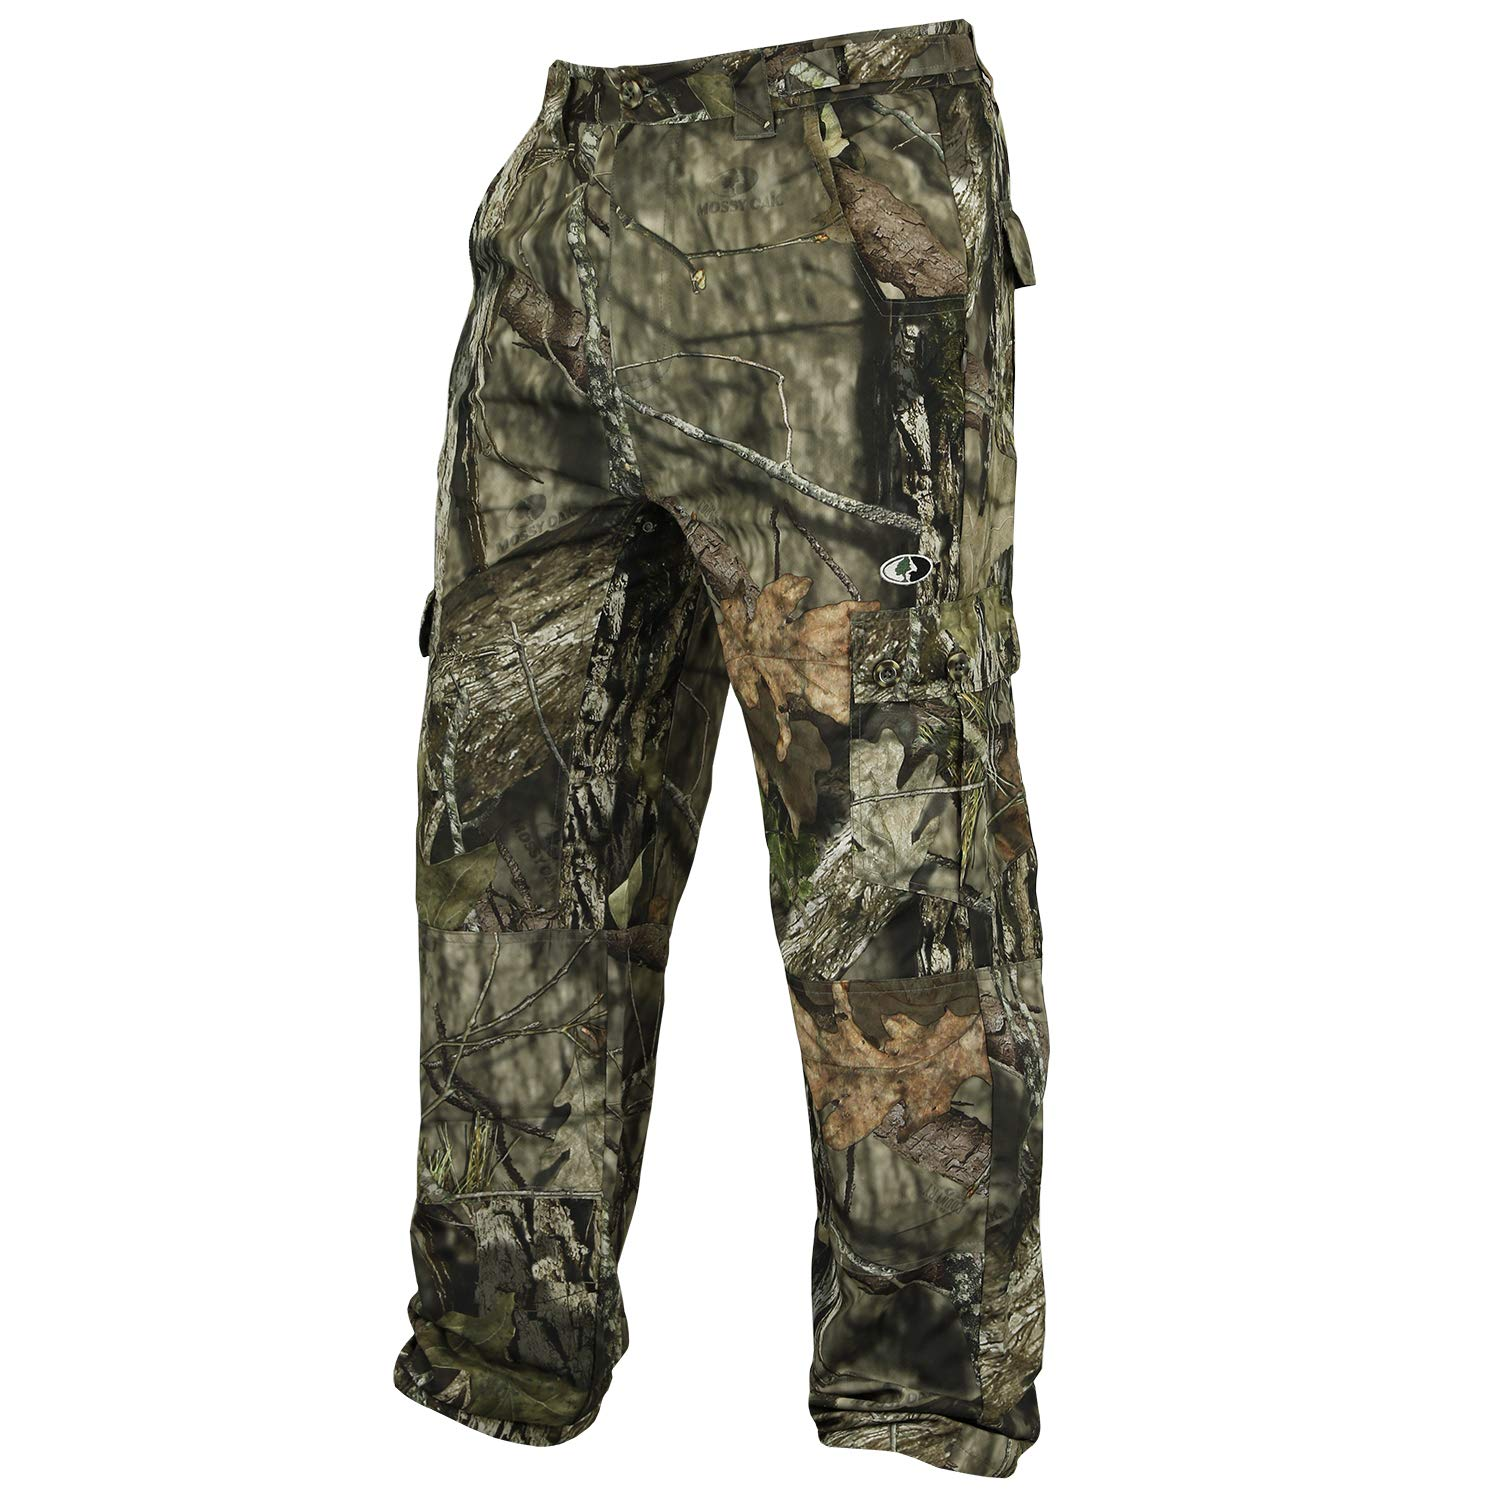 Mossy Oak Tibbee Camo Lightweight Hunting Pants for Men Camouflage Clothing by Mossy Oak